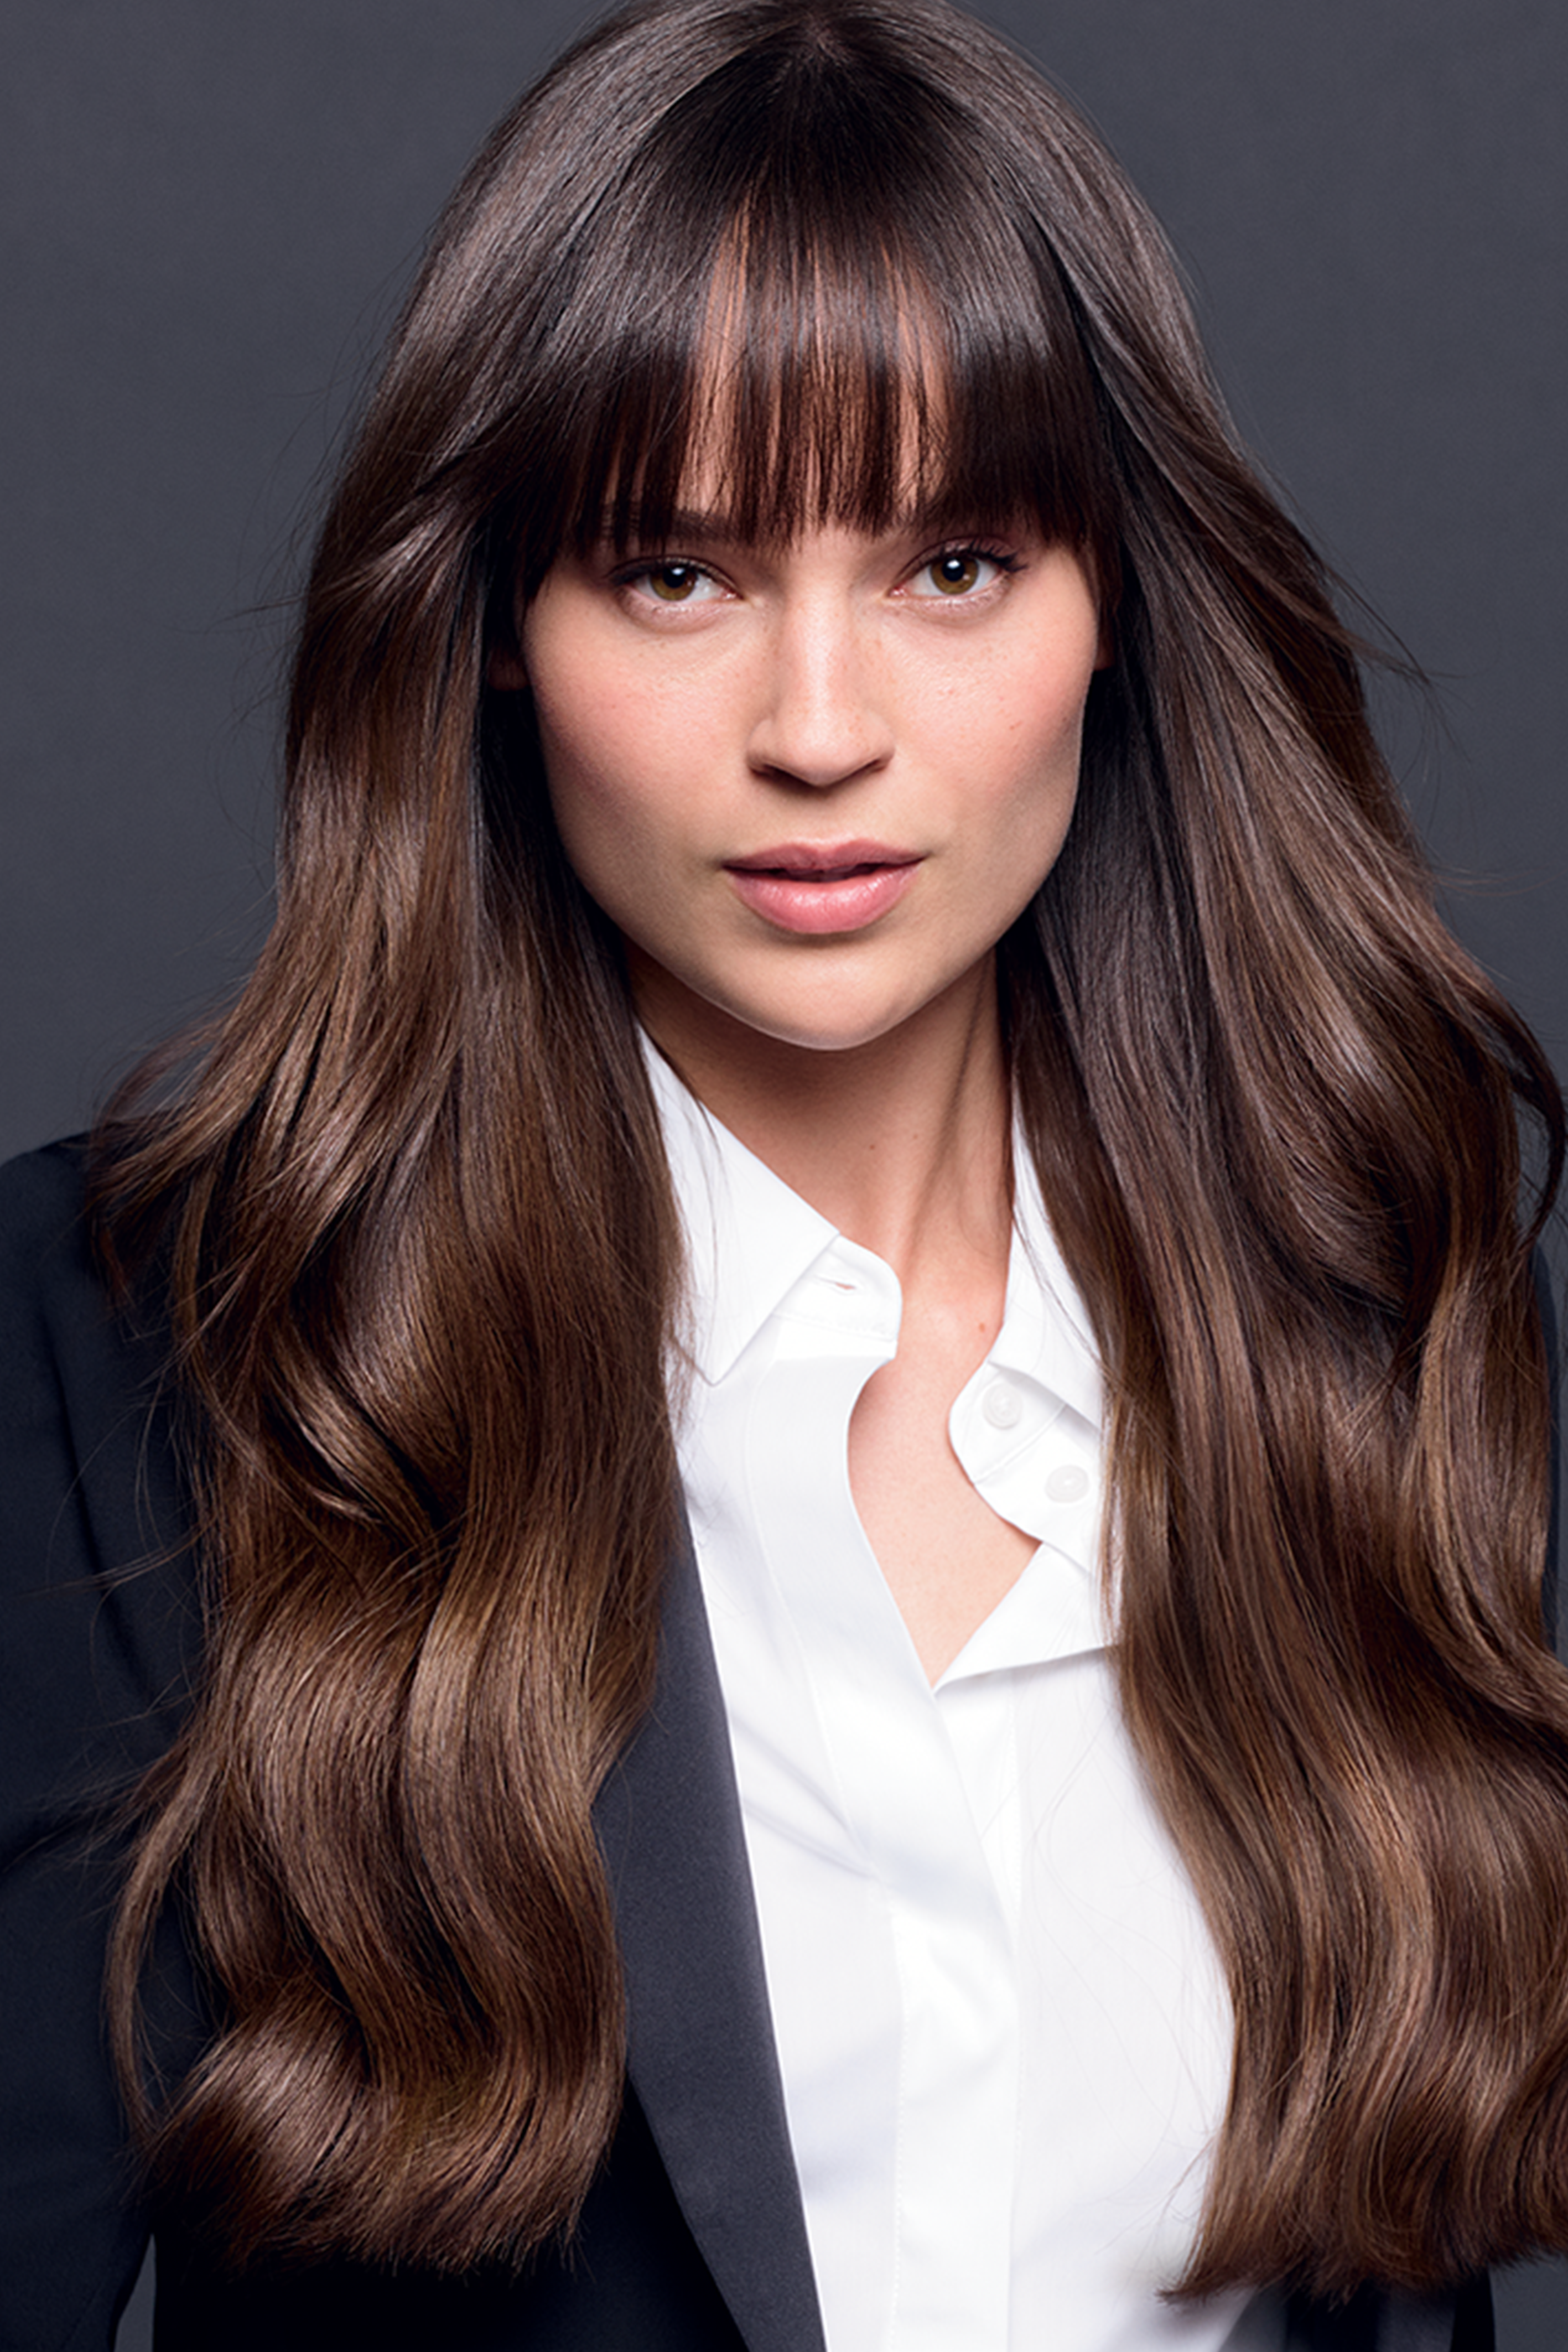 To Mix Up The Simplicity Of Smooth Or Slightly Wavy Long Hair Nothing Works Better Than Beautiful Bangs In 2020 Long Wavy Hair Long Hair Styles Long Bangs